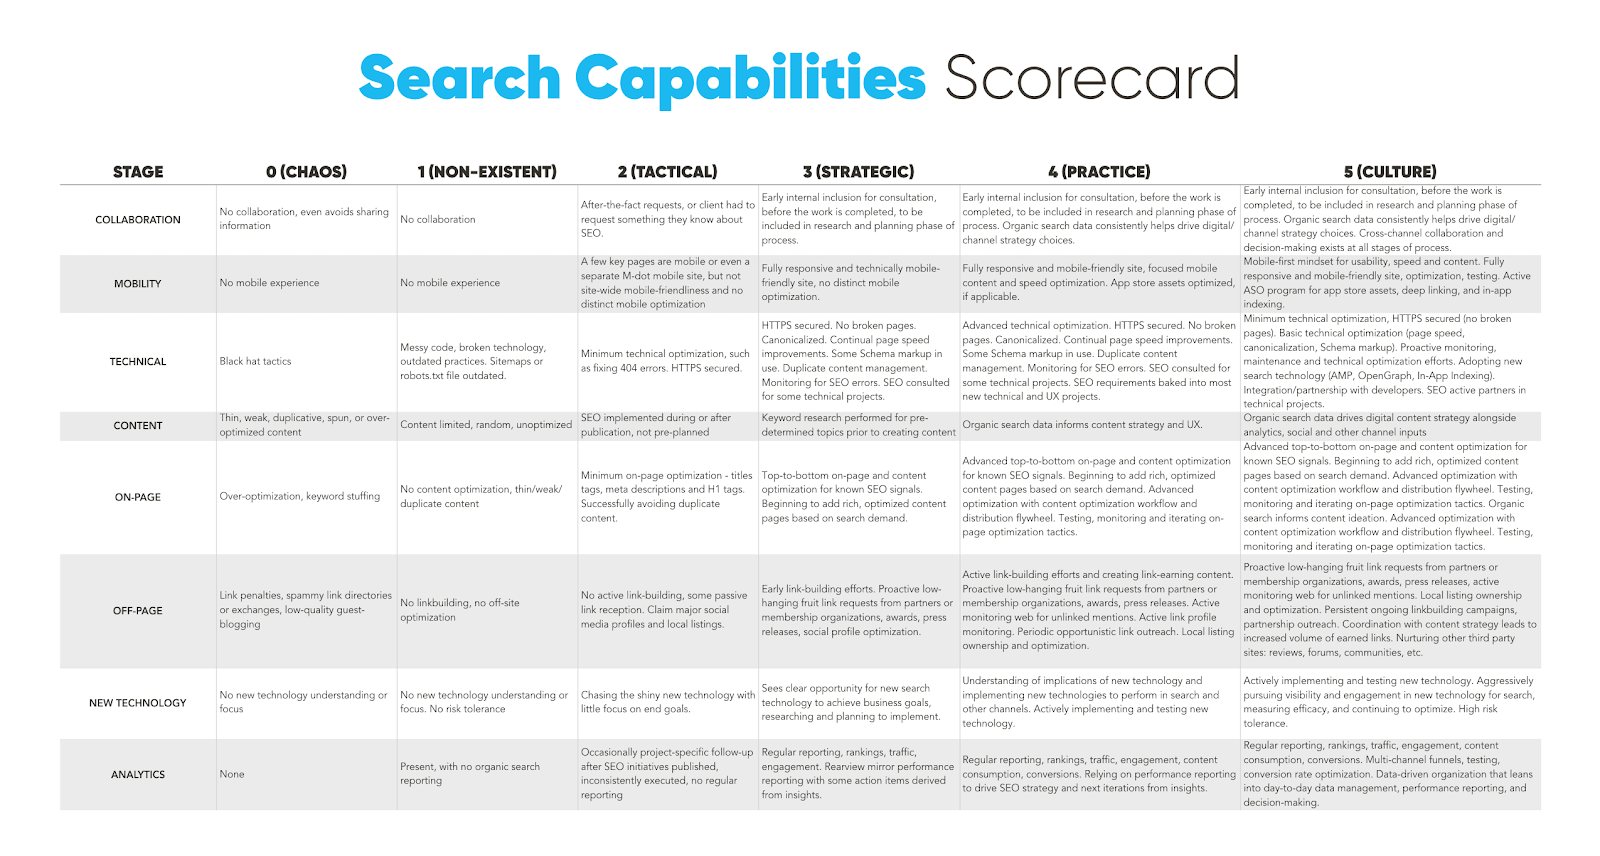 Search Capabilities Score Card